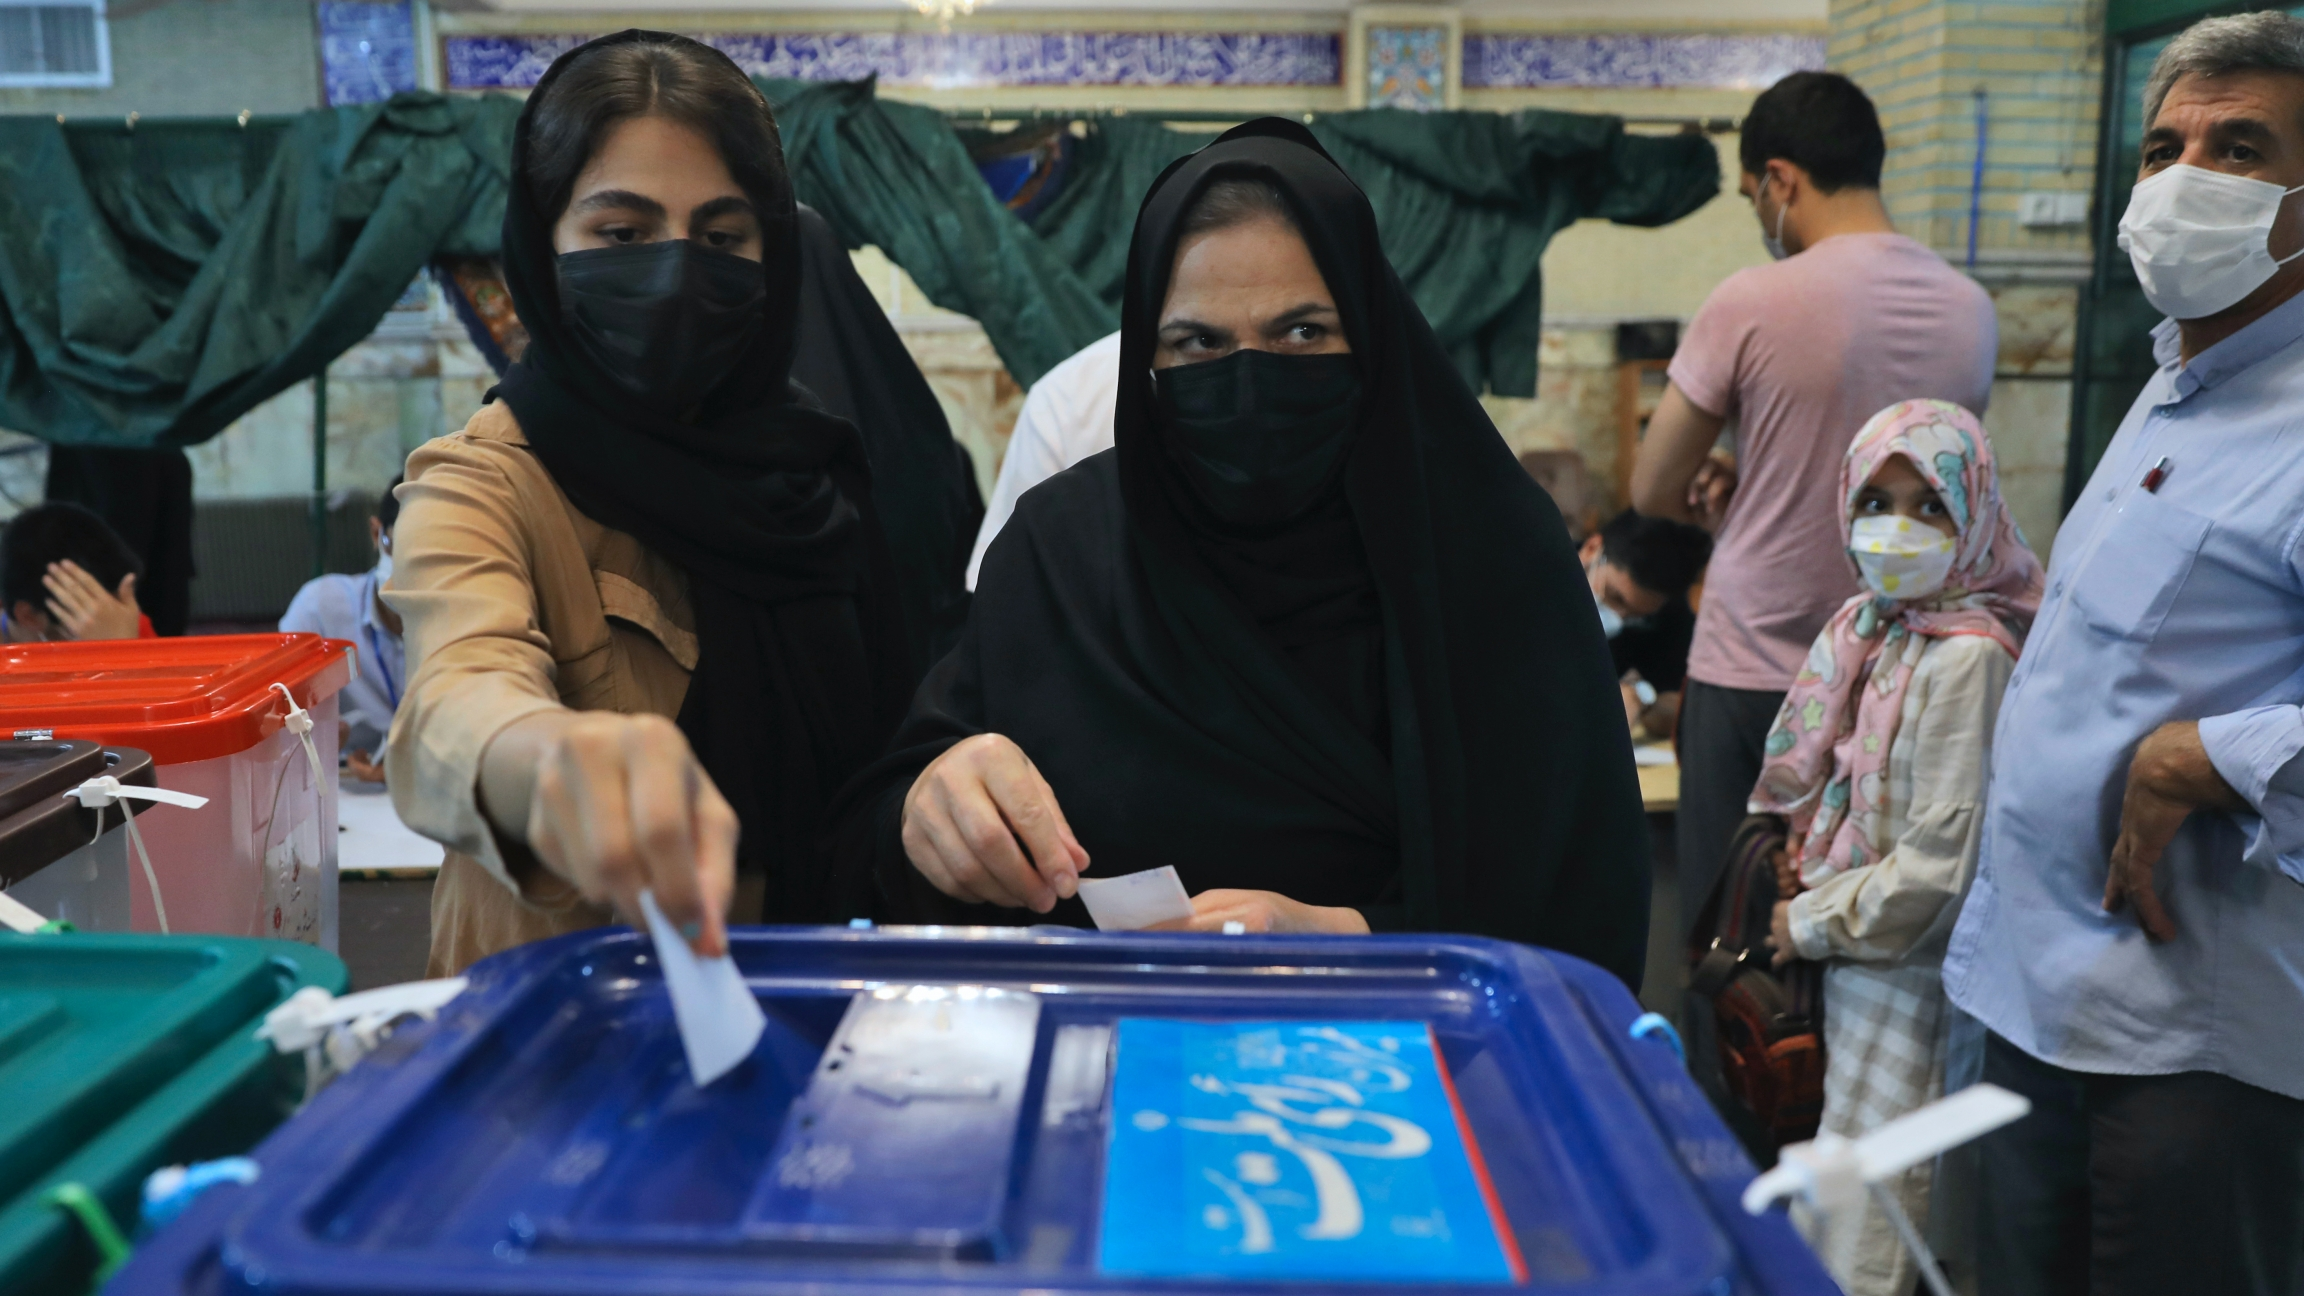 Voters cast their ballots for the presidential elections at a polling station in Tehran, Iran, June 18, 2021.